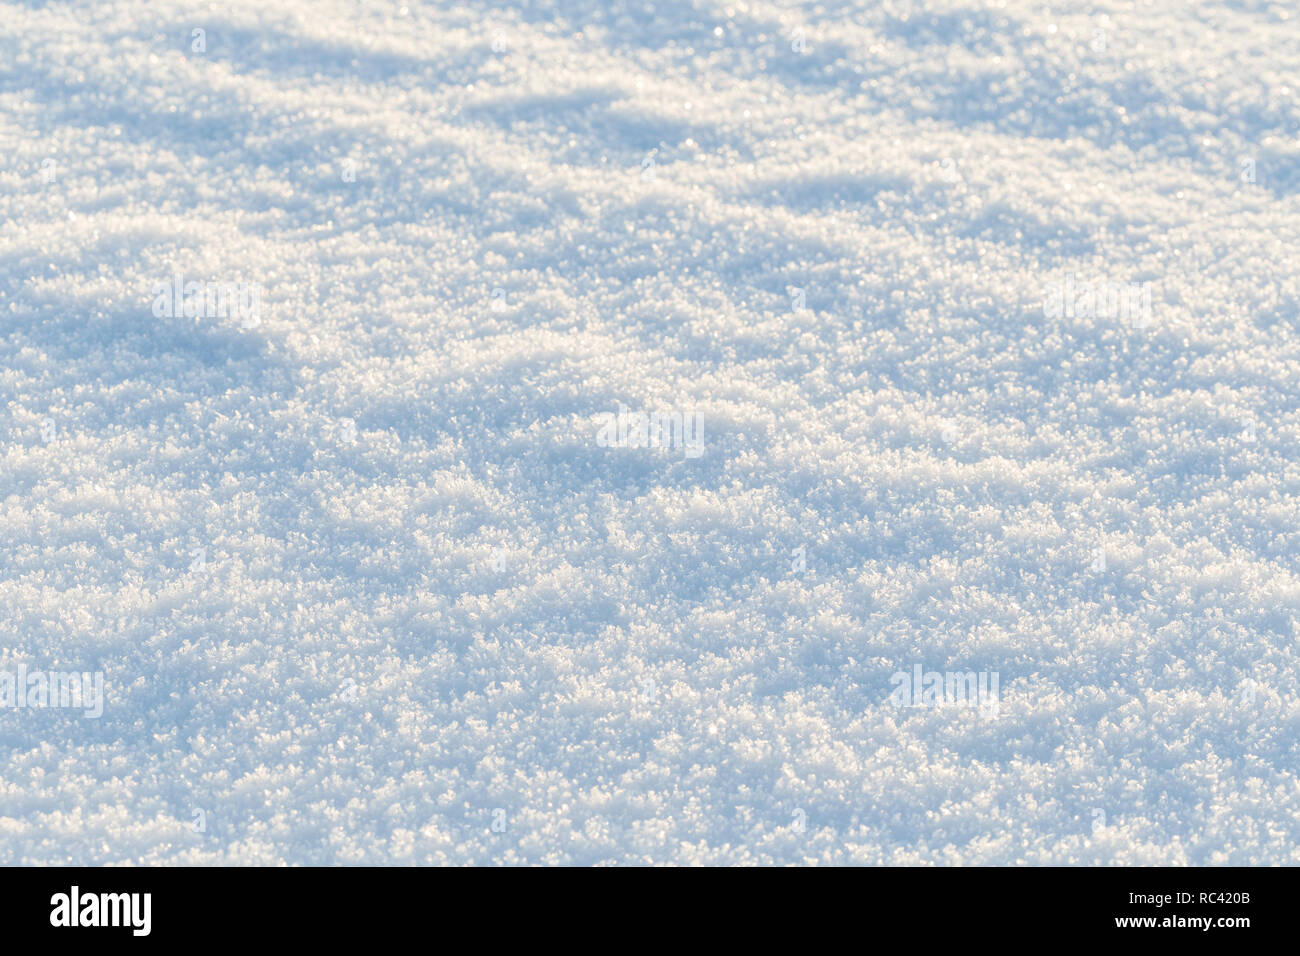 Close-up of fresh snow on the ground on a sunny day, good as a winter season background. Stock Photo